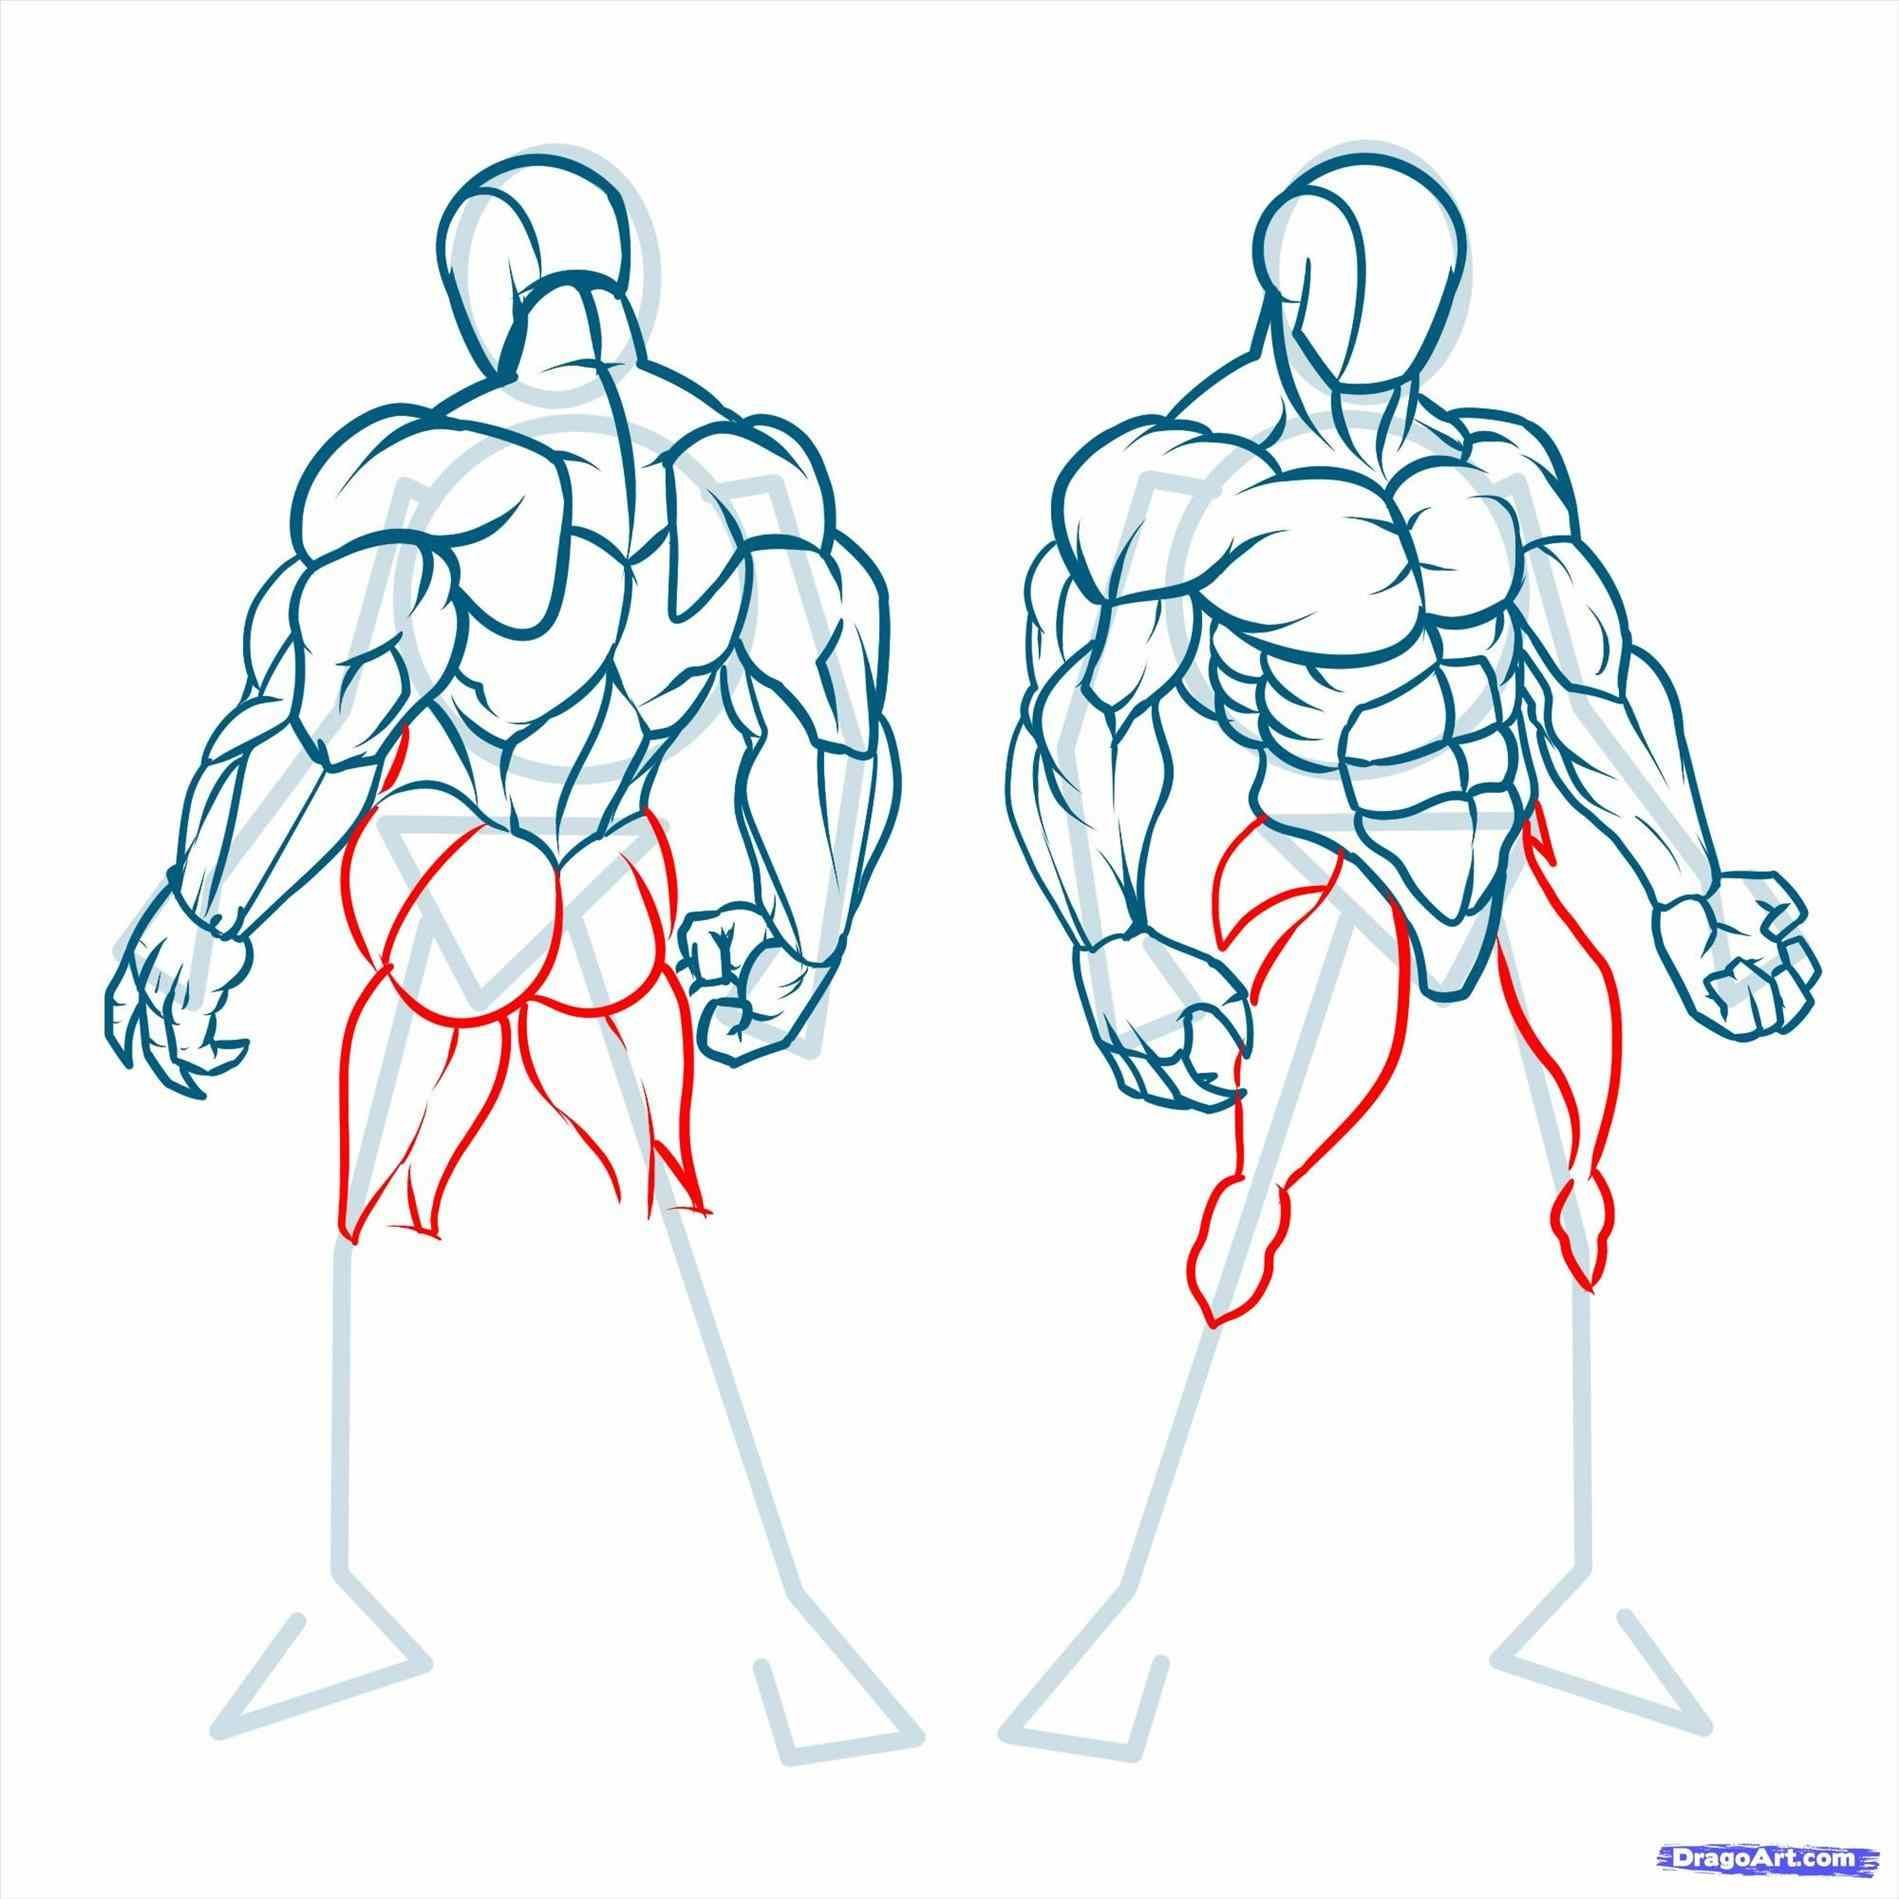 Image Result For Anime Boy Full Body Figure Drawing Human Anatomy Art Figure Drawing Reference